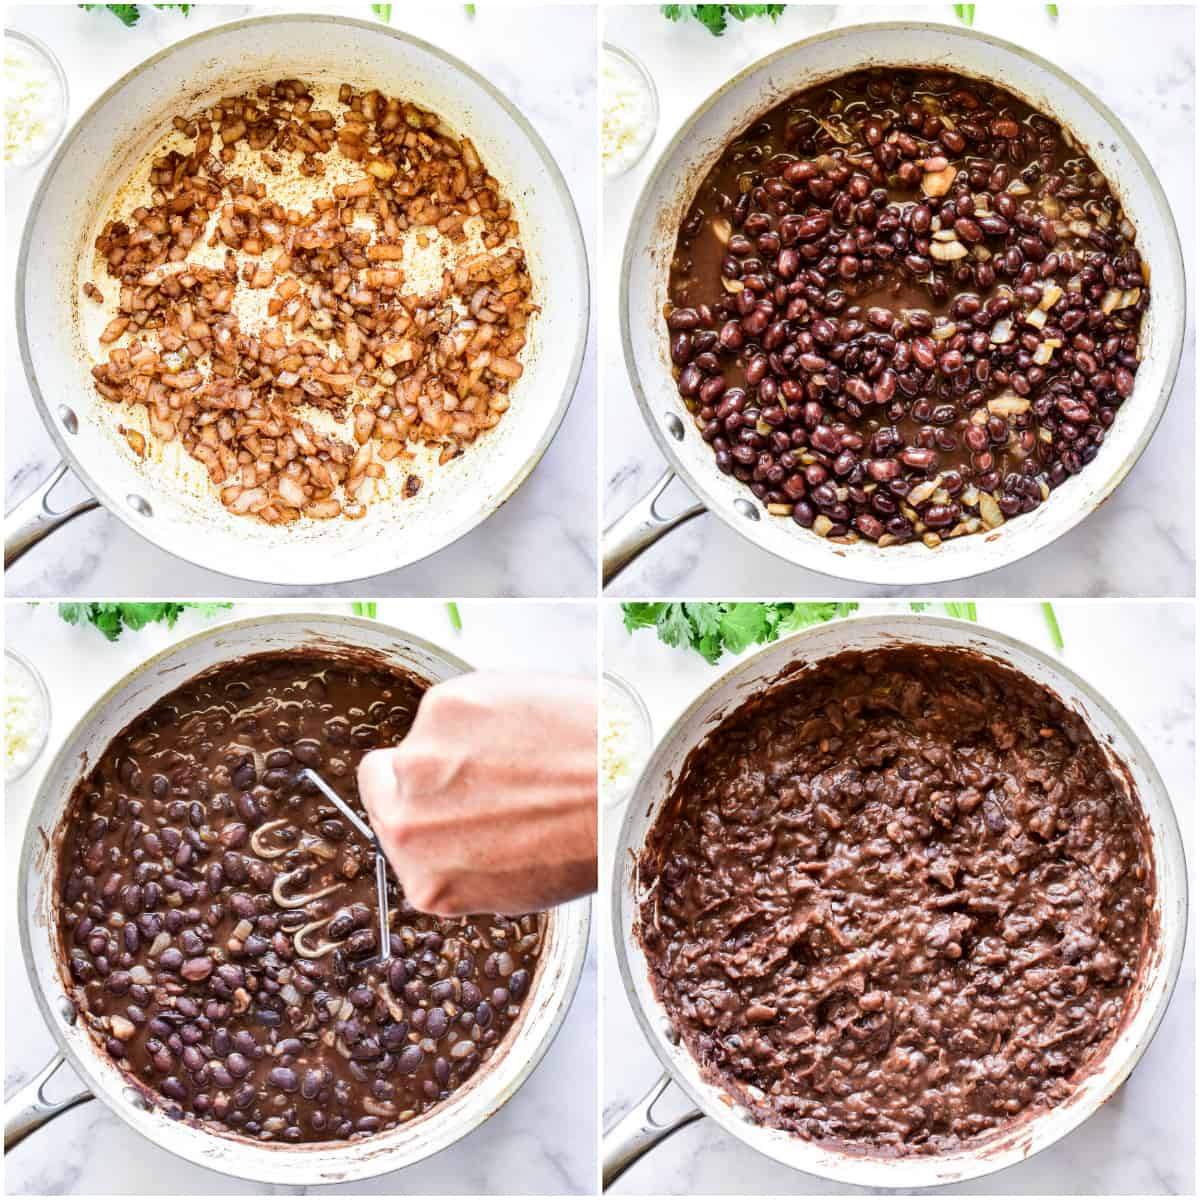 Process photos showing how to make Refried Black Beans